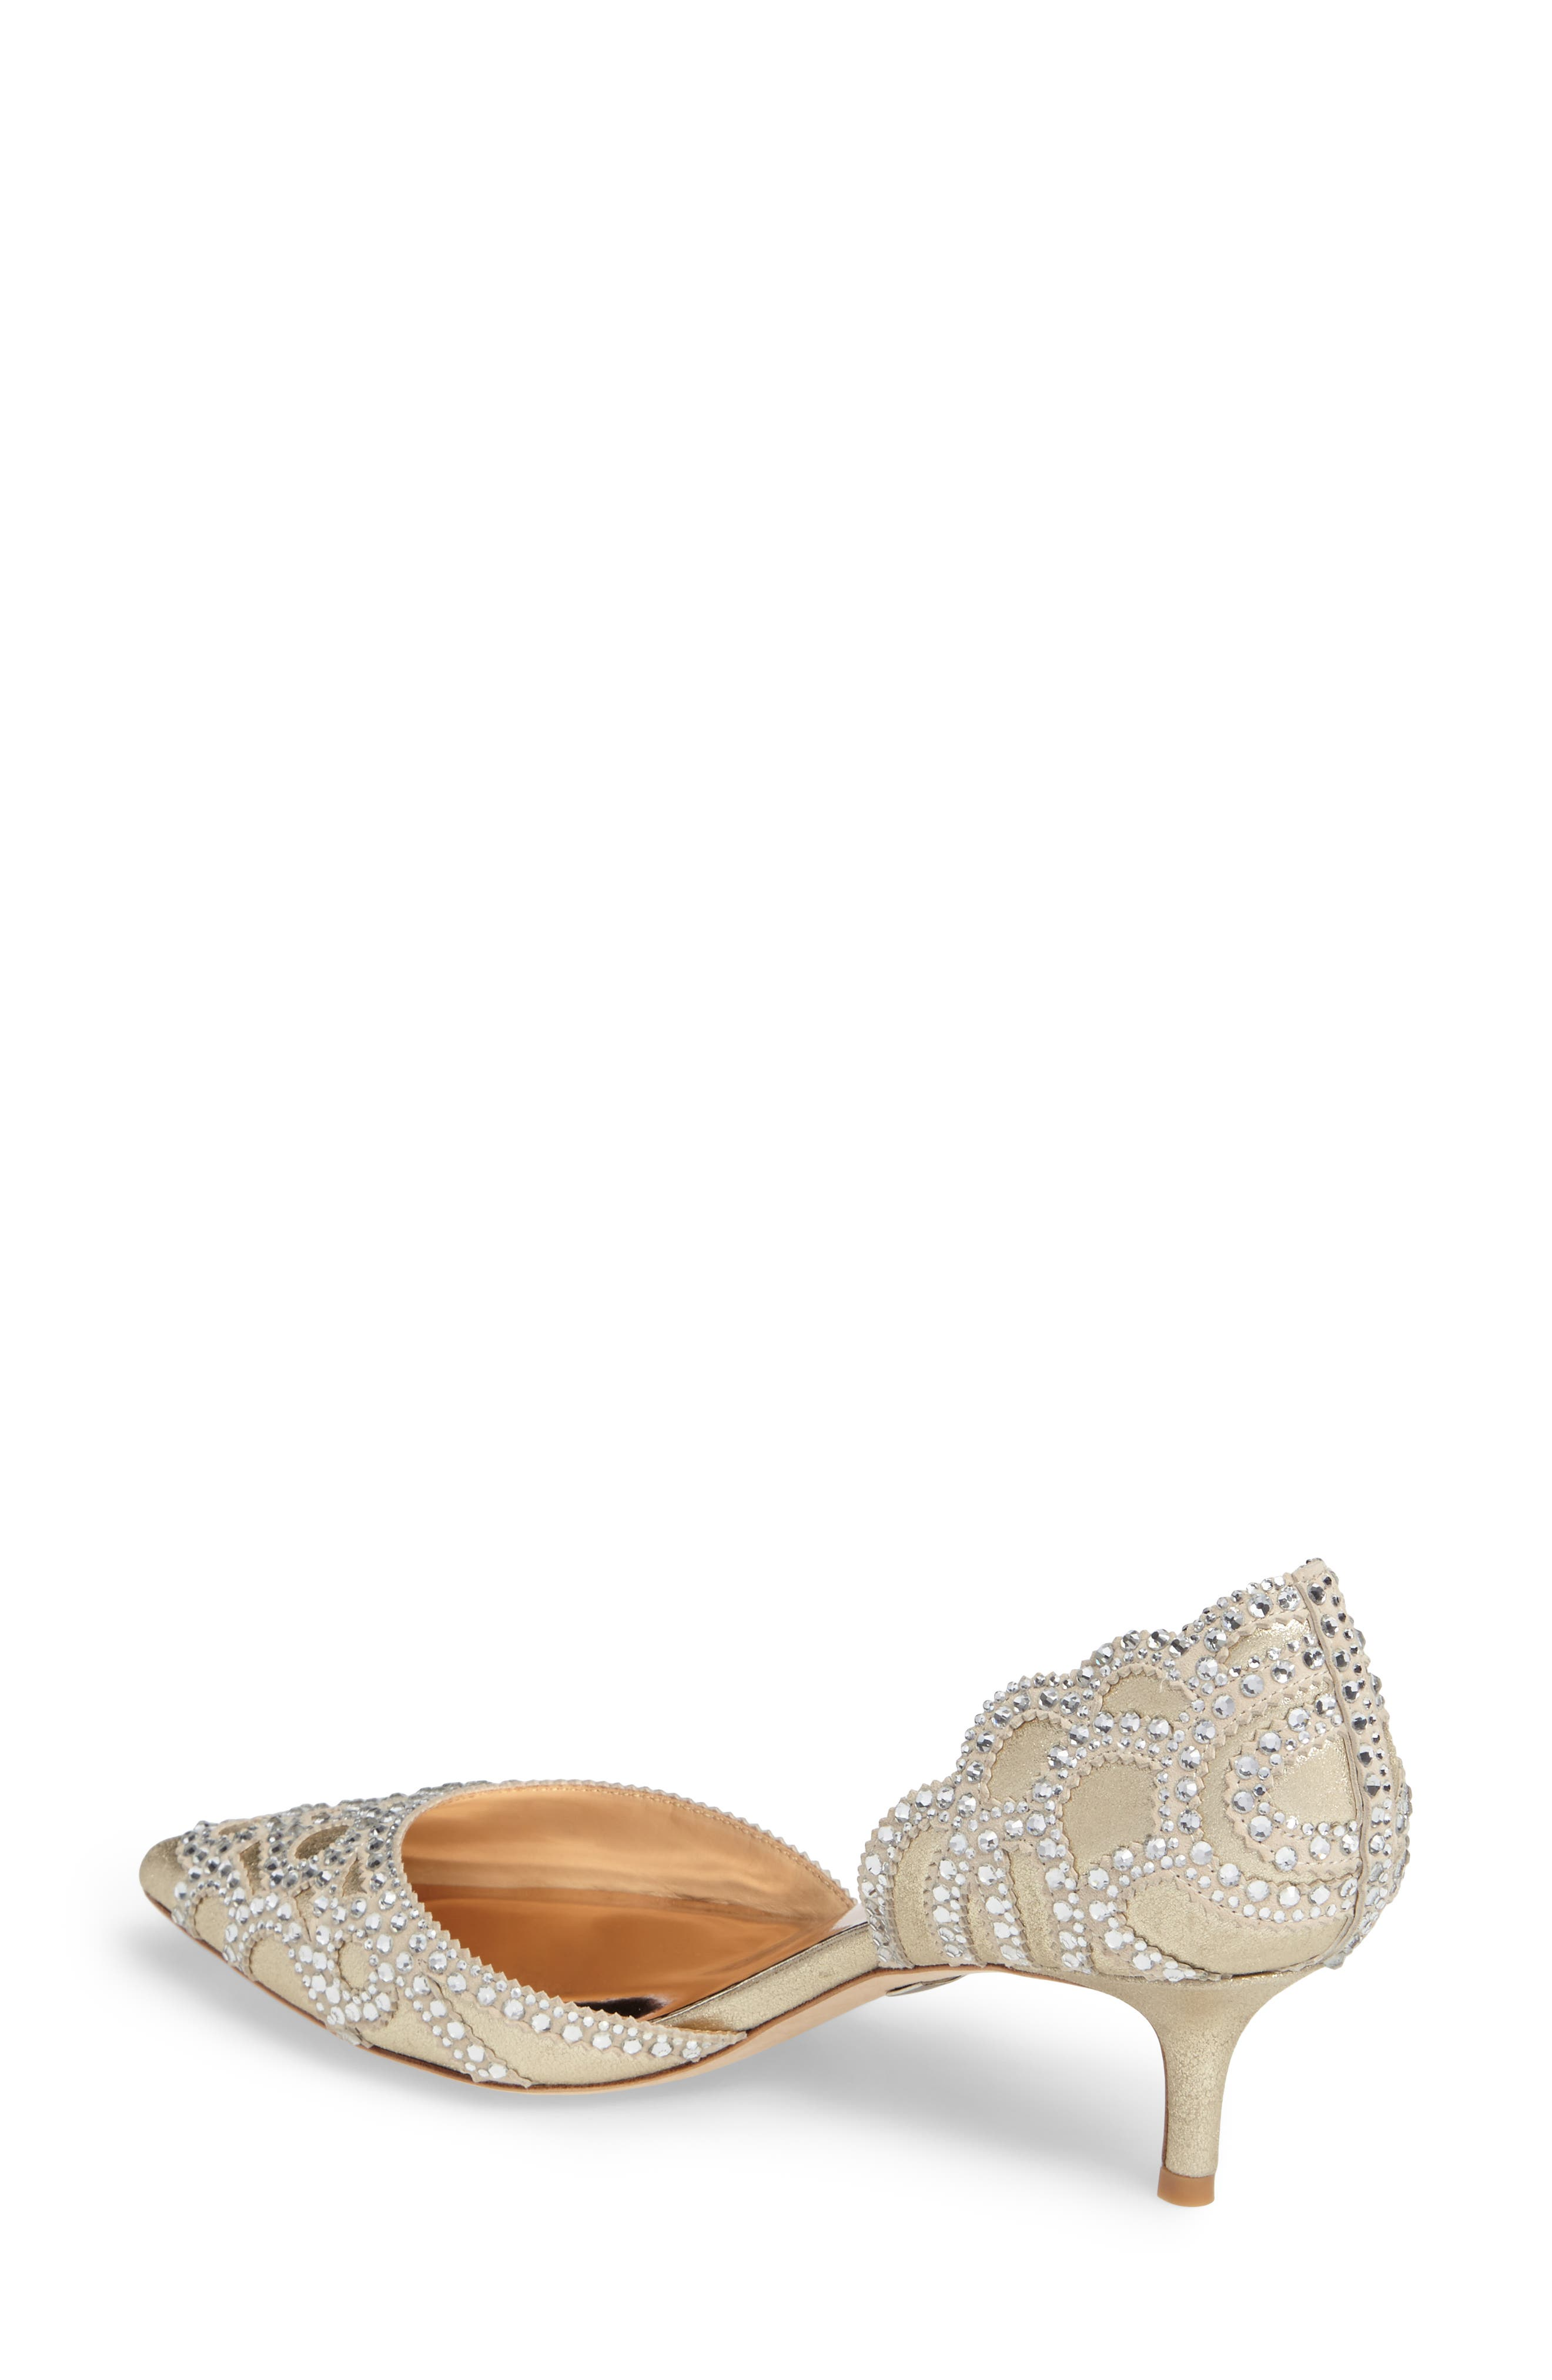 ,                             Badgley Mischka 'Ginny' Embellished d'Orsay Pump,                             Alternate thumbnail 2, color,                             PLATINO METALLIC SUEDE